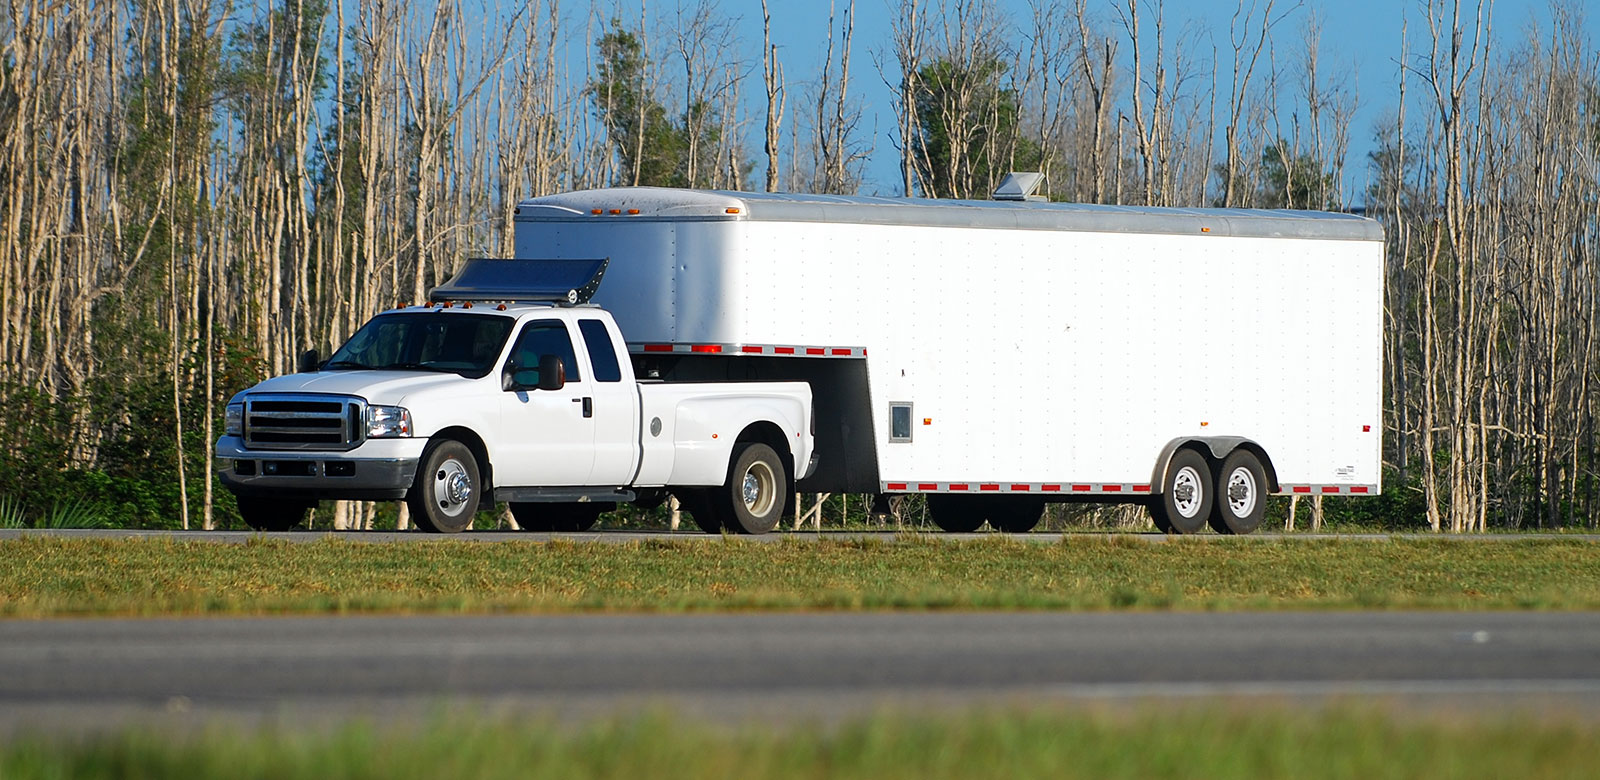 Large white pick up truck trailer being hauled by white pick up truck